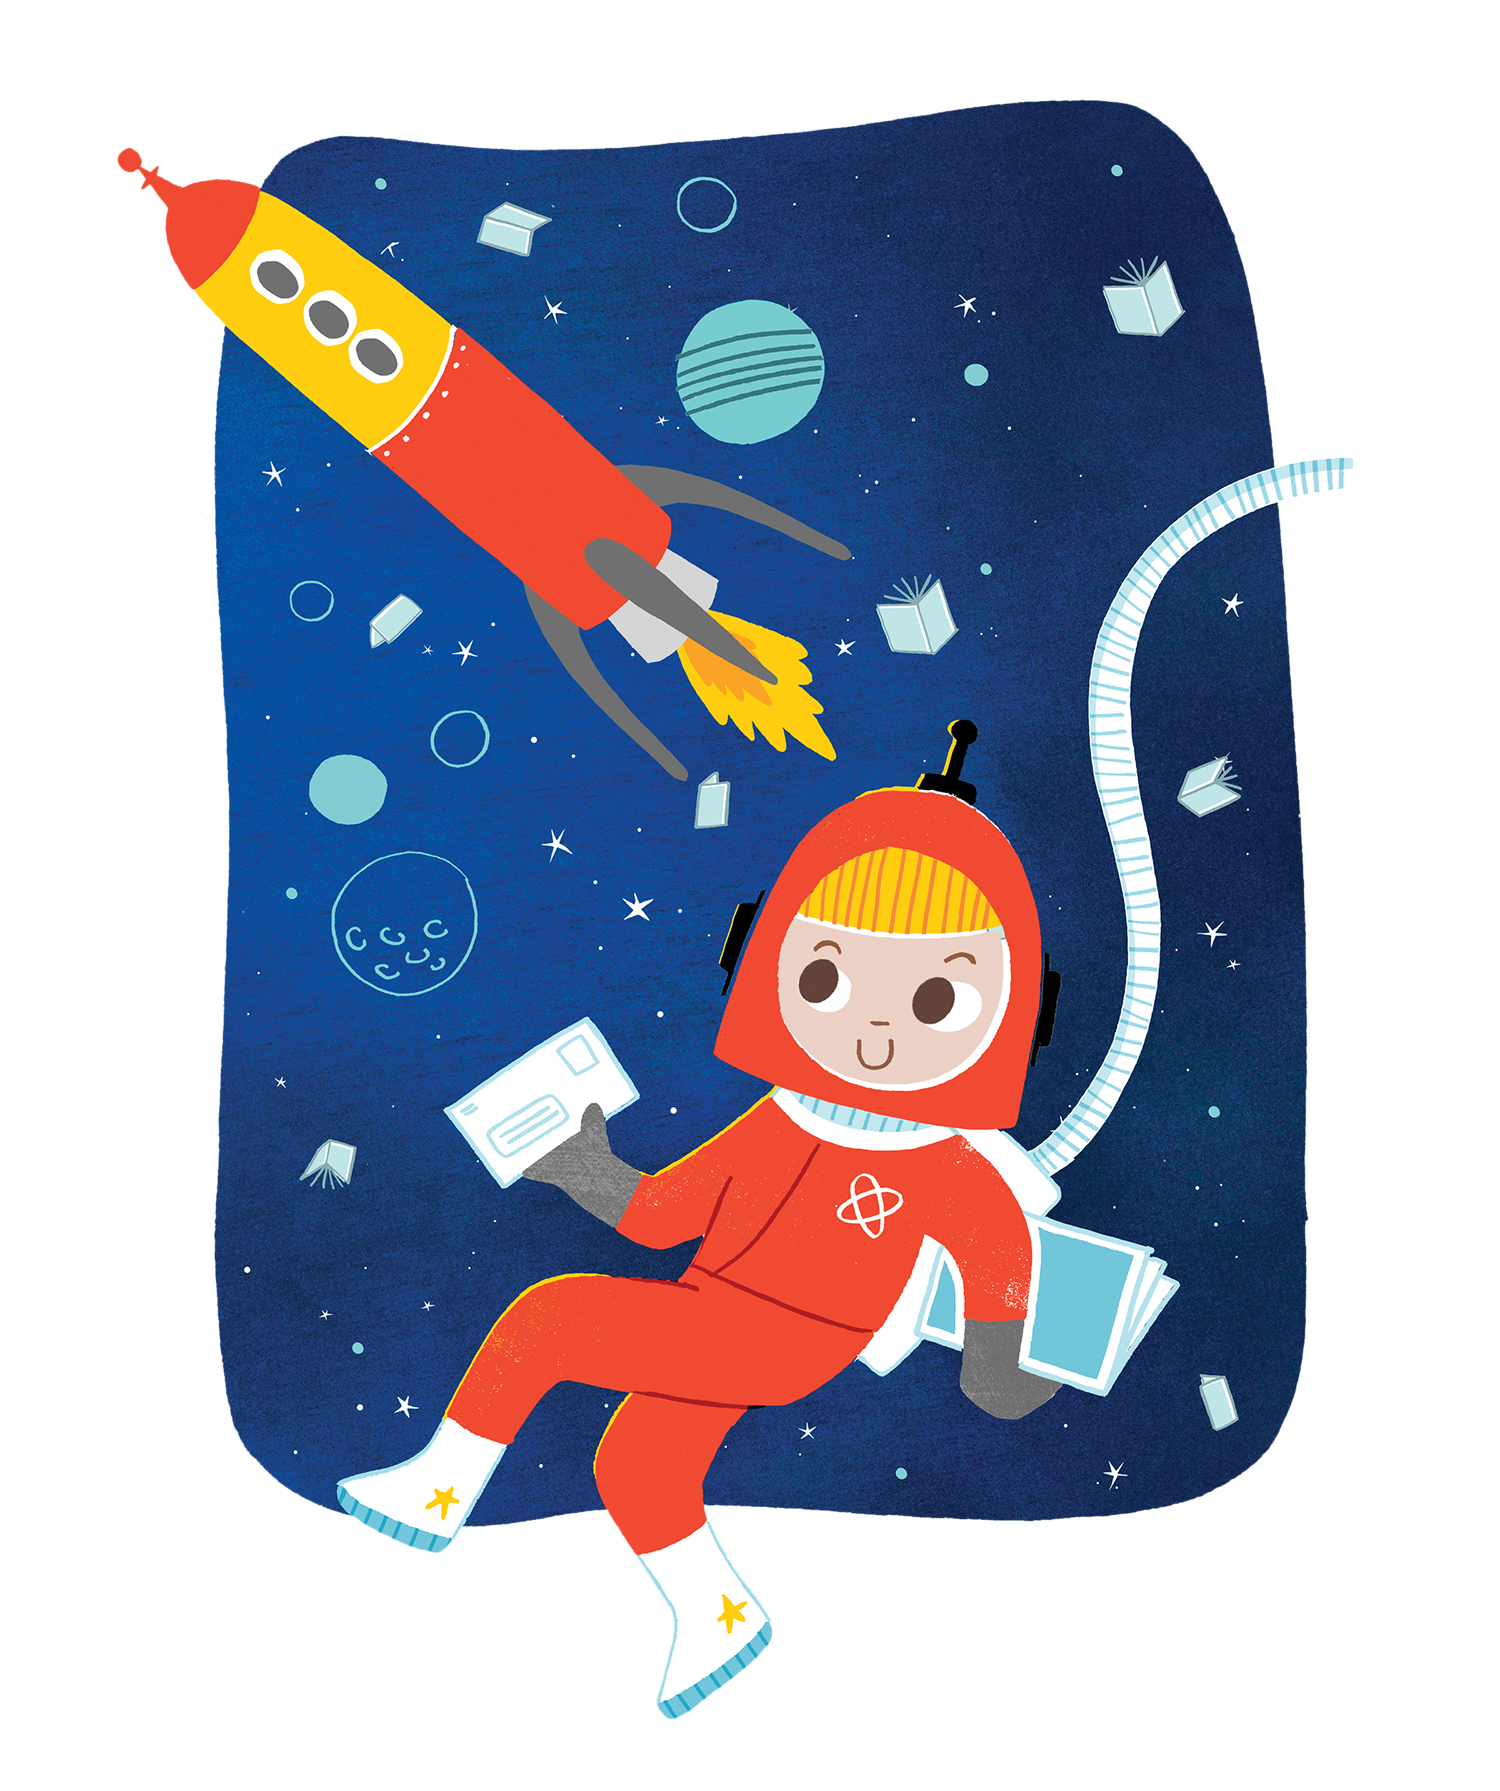 Sound Explorers: Sound in Outer Space, Grades K-6